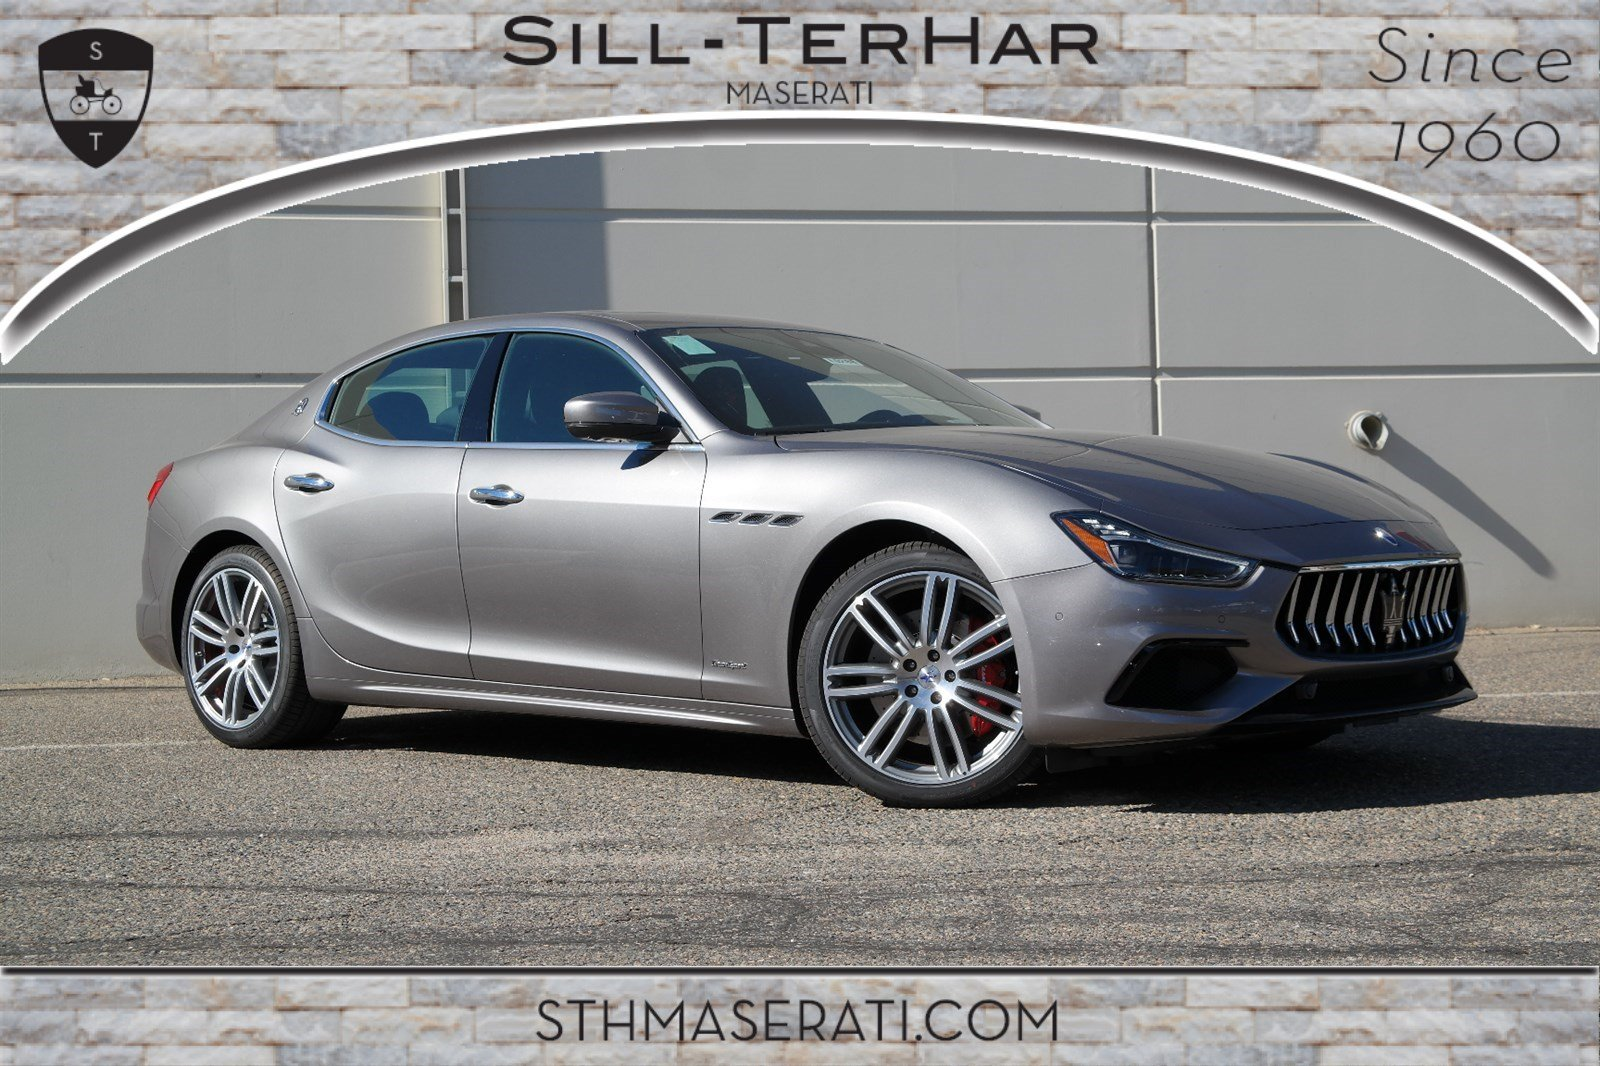 Maserati Ghibli Q4 >> New 2019 Maserati Ghibli S Q4 Gransport For Sale Or Lease Denver Co Near Westminster Boulder 000r0288 Zam57yts0k1315886